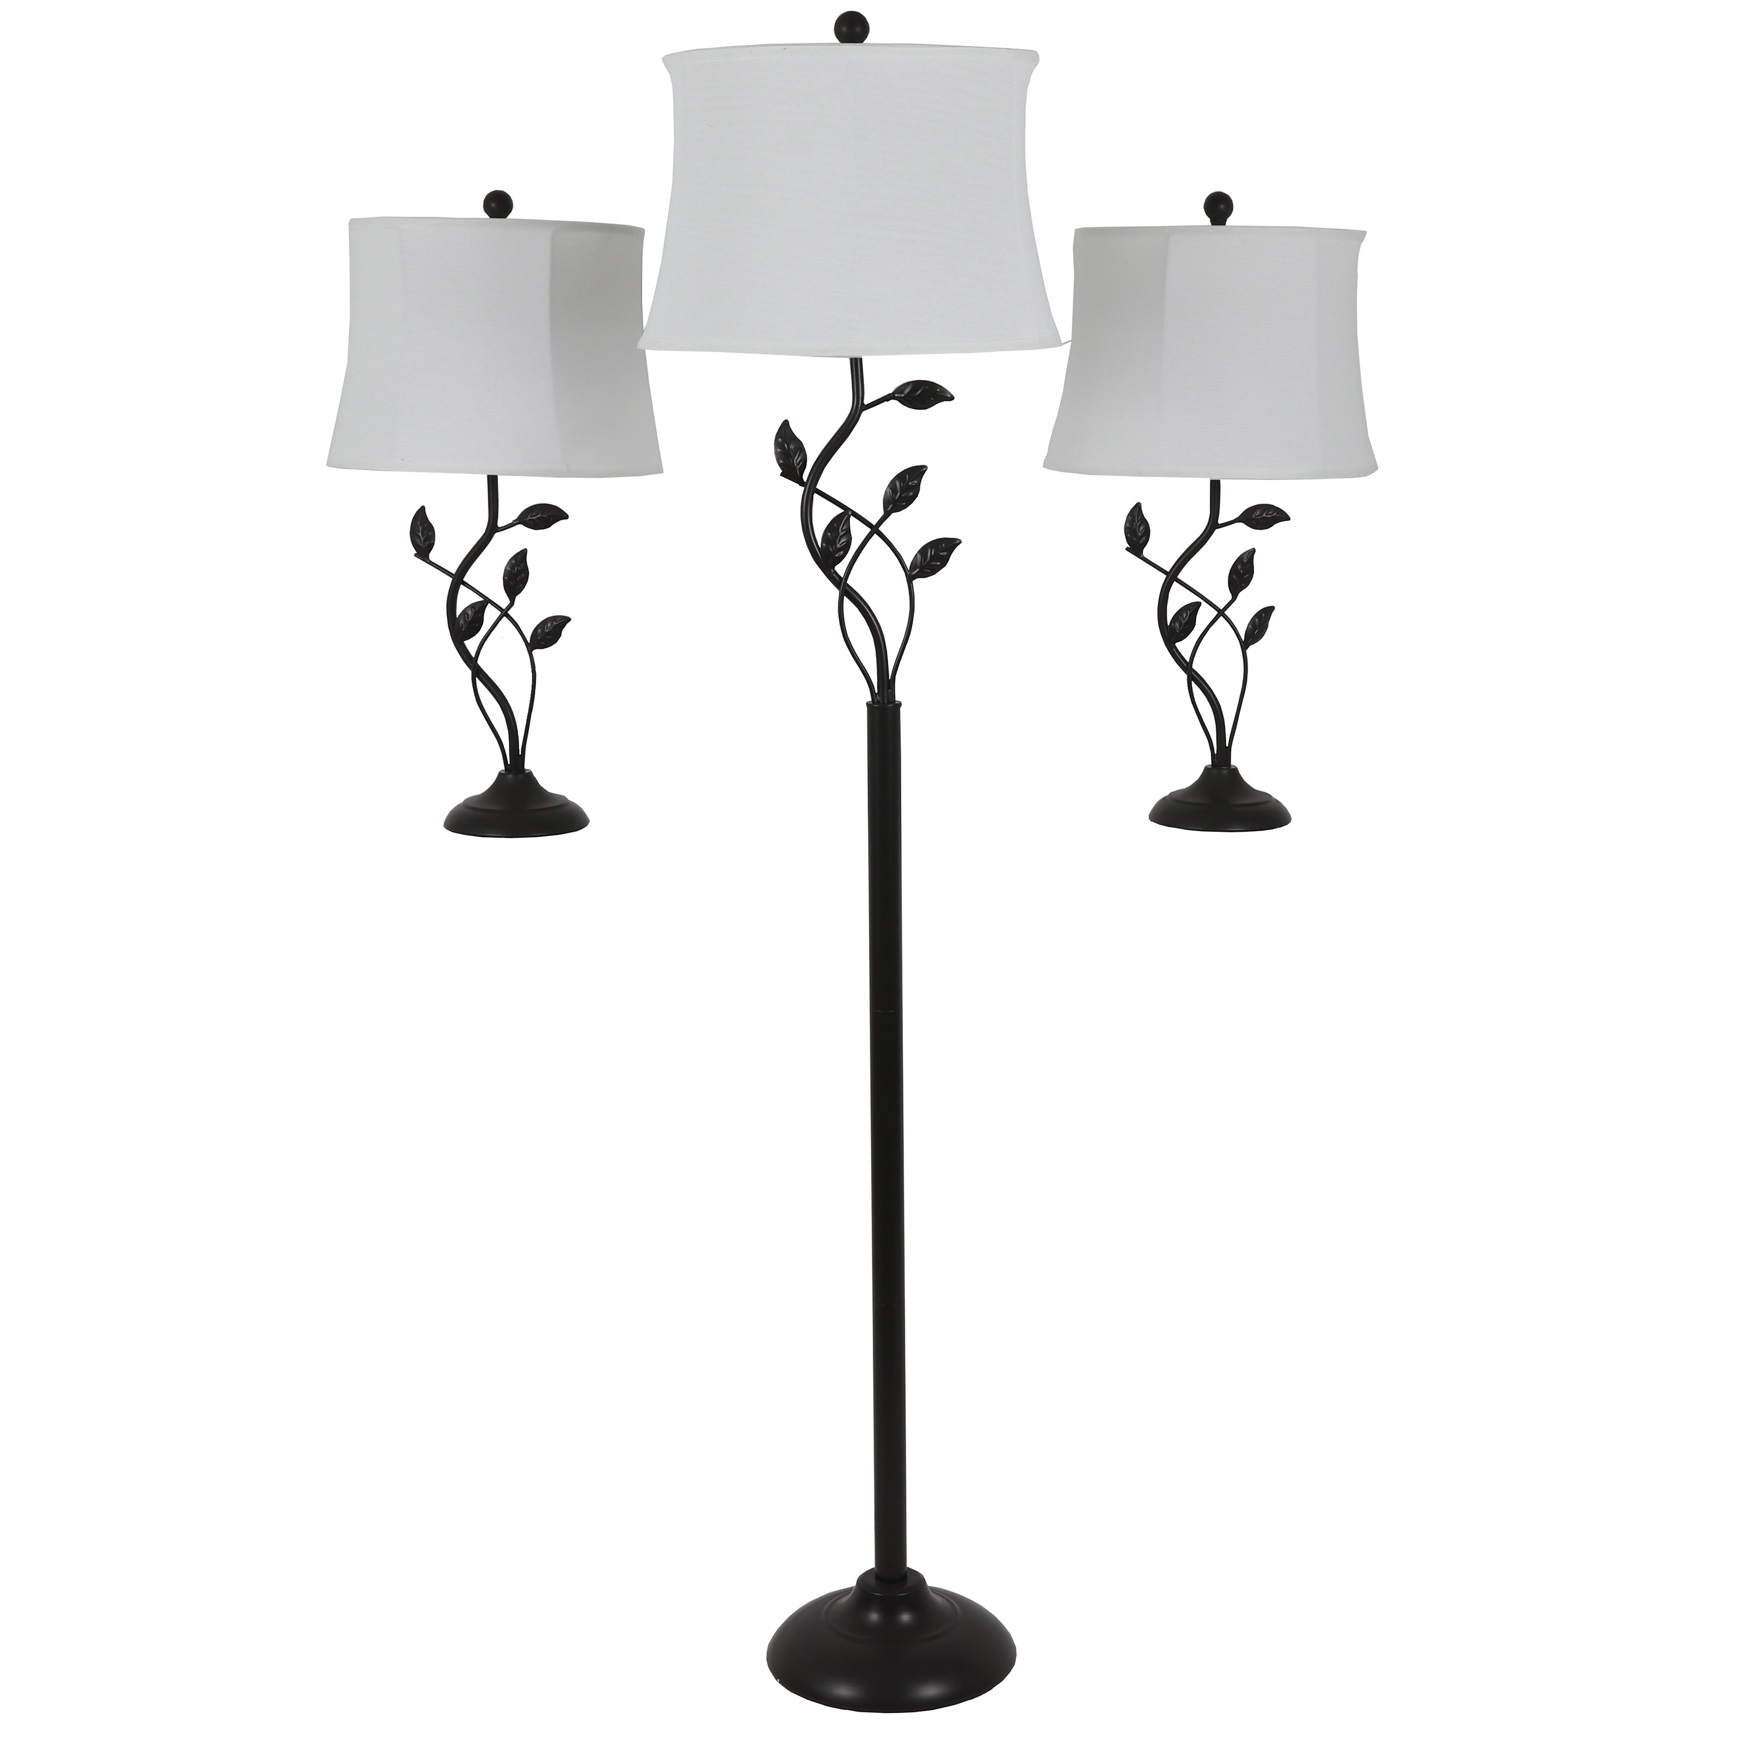 Organic Leaf 3-Pack Lamp Set by J. Hunt, PAINTED BRONZE